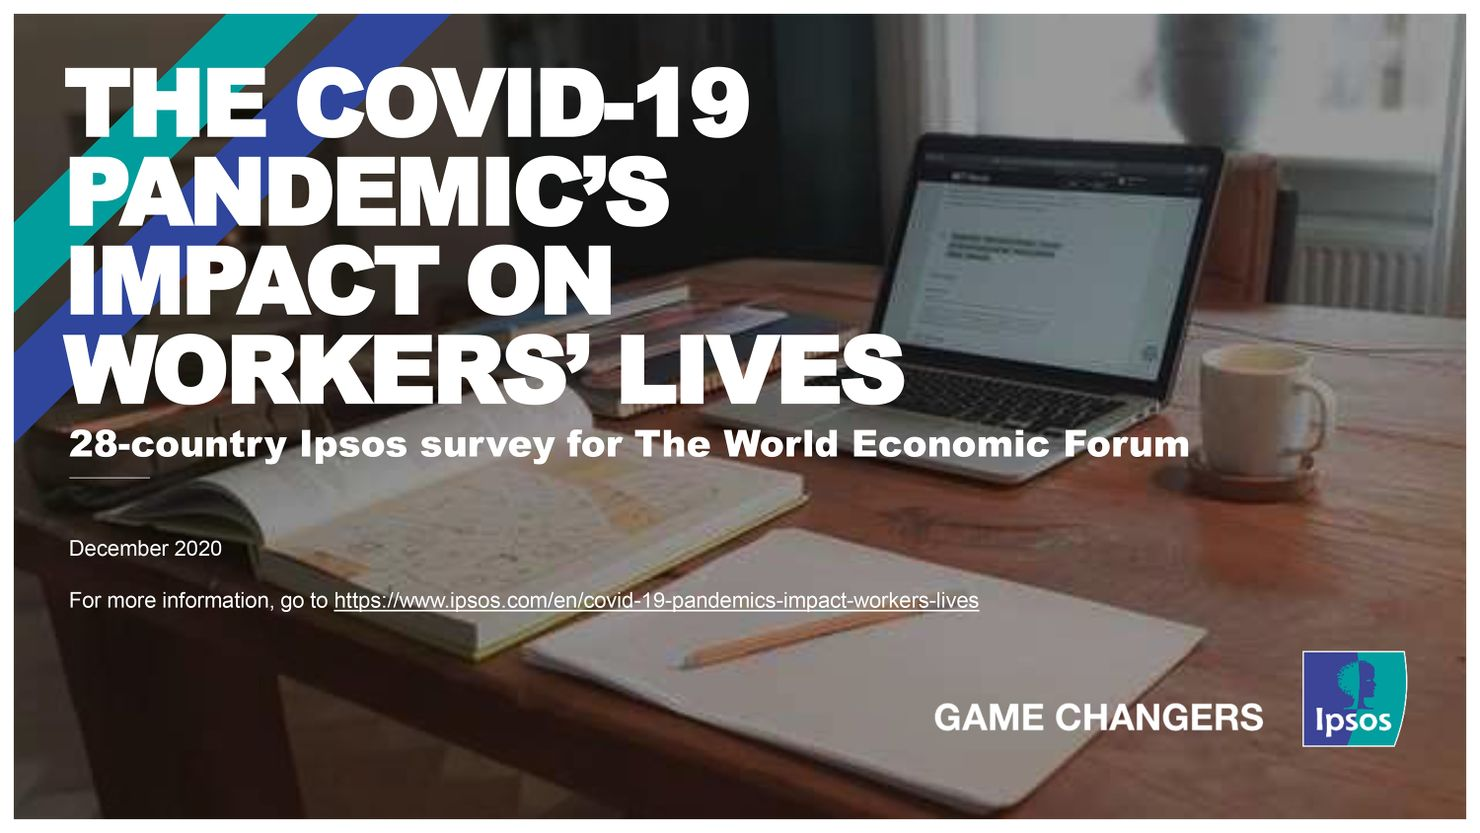 cover of the survey report by ipsos for world economic forum